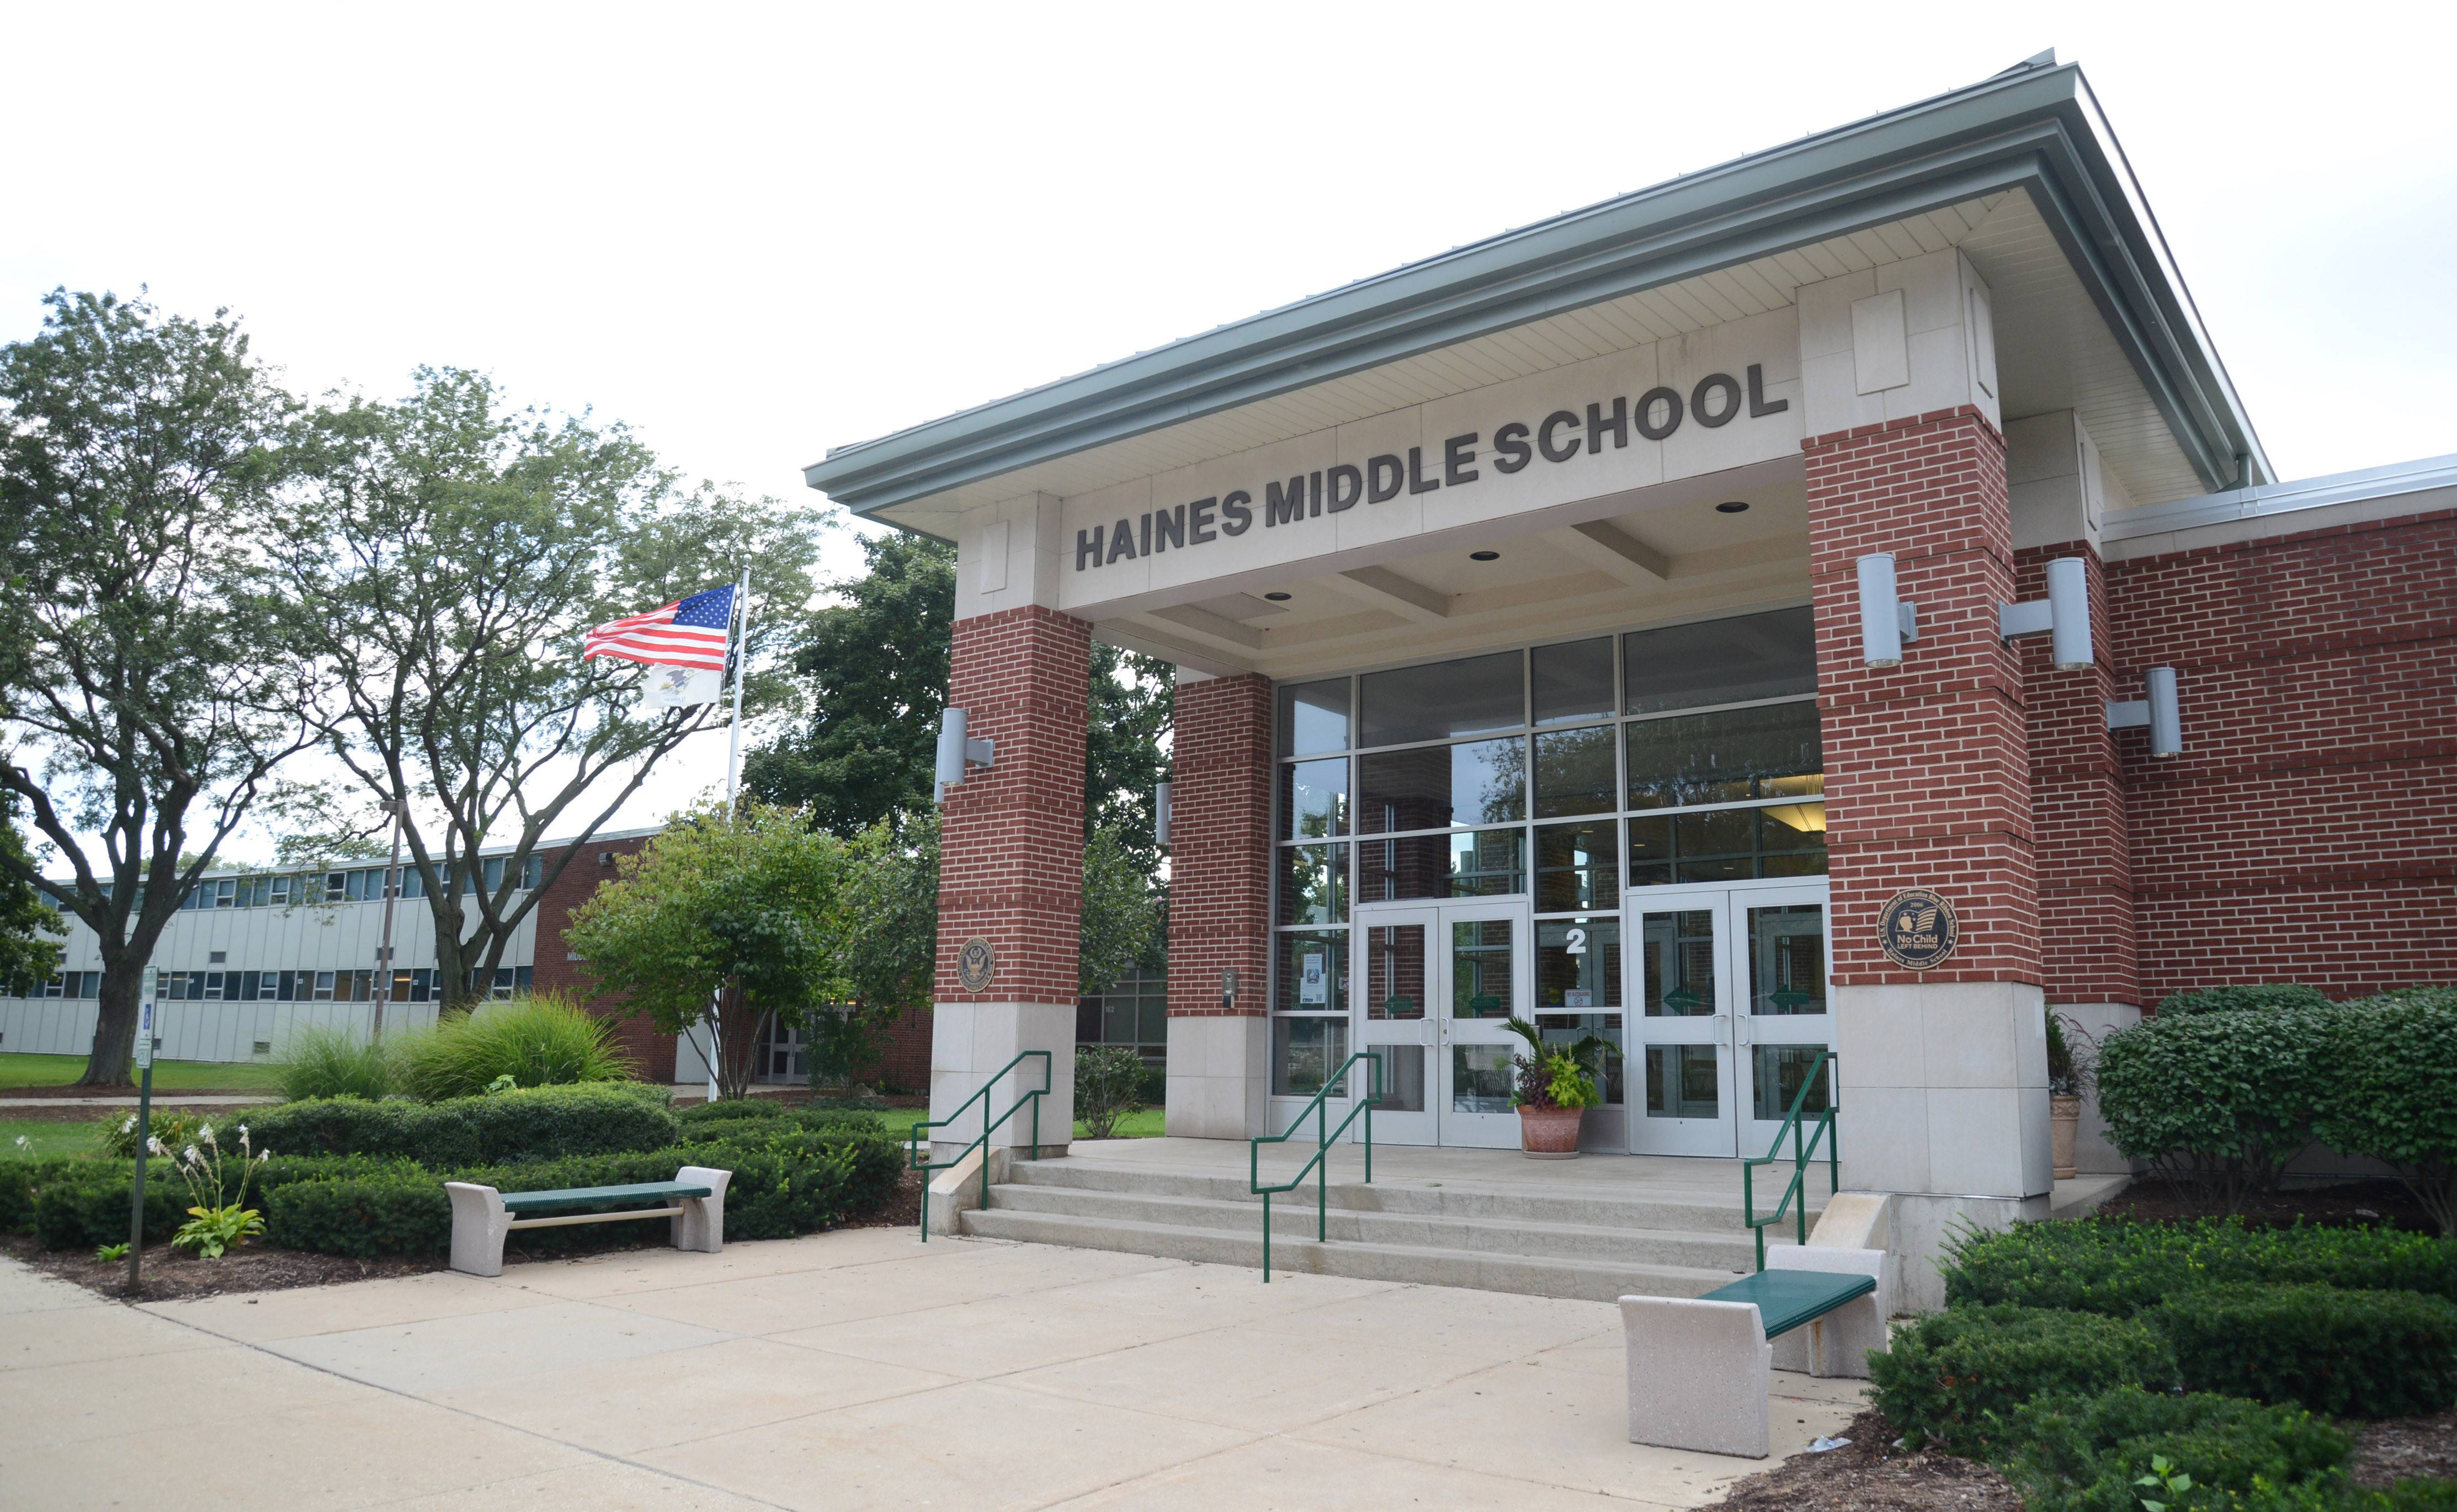 Some Haines Middle School parents are upset about a plan to close their building that they say will result in a poor replacement and chaotic transition period.